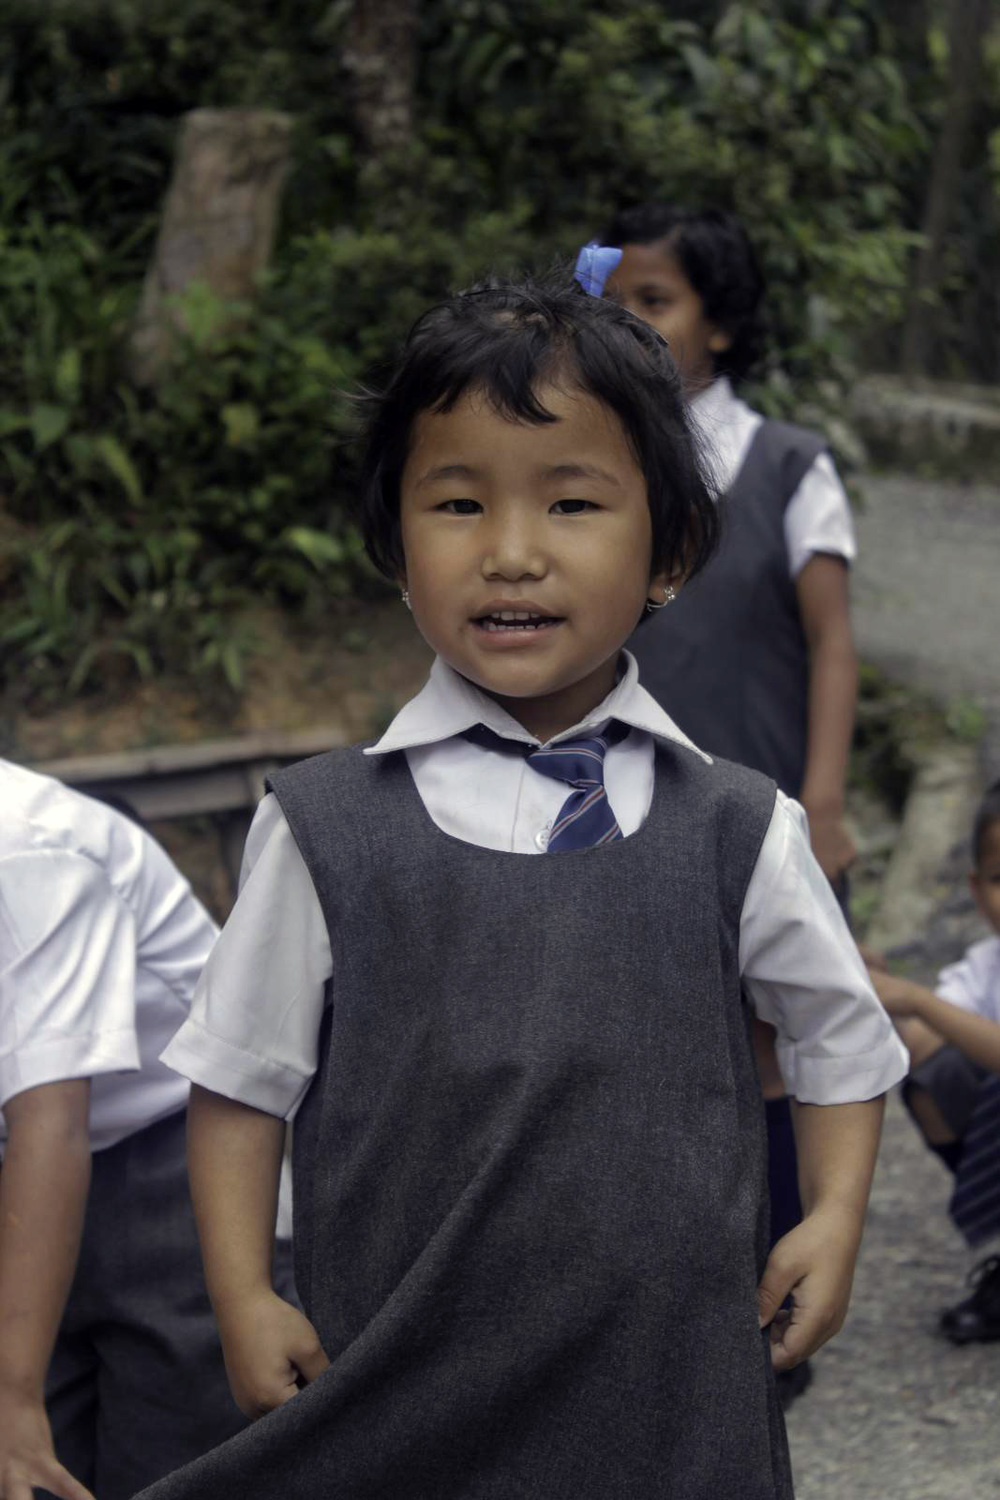 Cuteness overload = every day at the Asia's Hope School in Kalimpong.